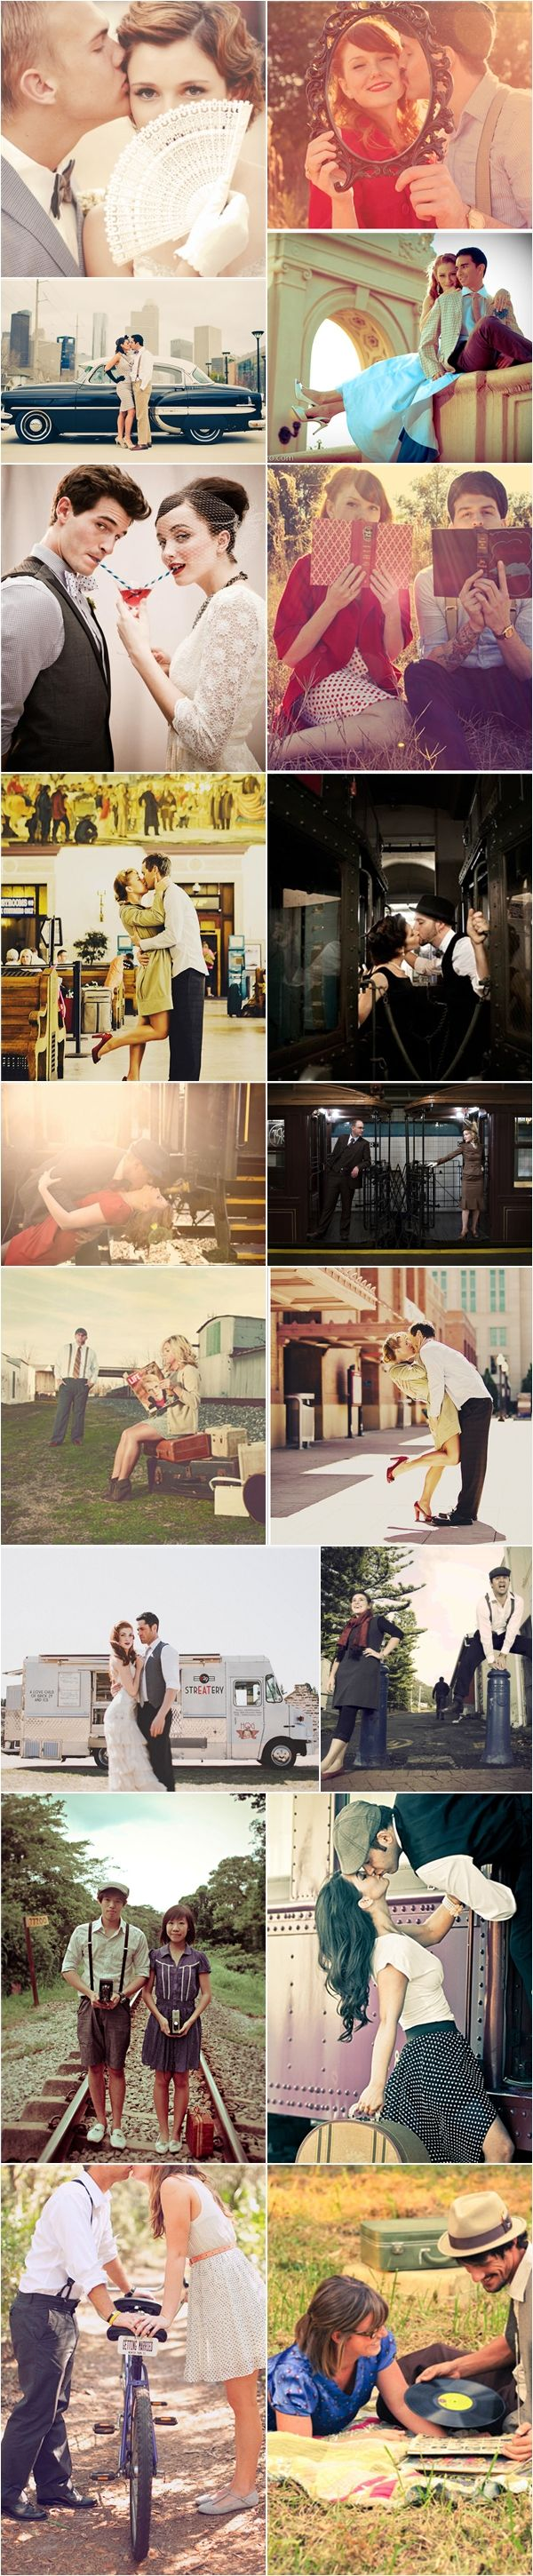 Praise Wedding » Wedding Inspiration and Planning » 46 Beautiful Vintage-Inspired Engagement Photos